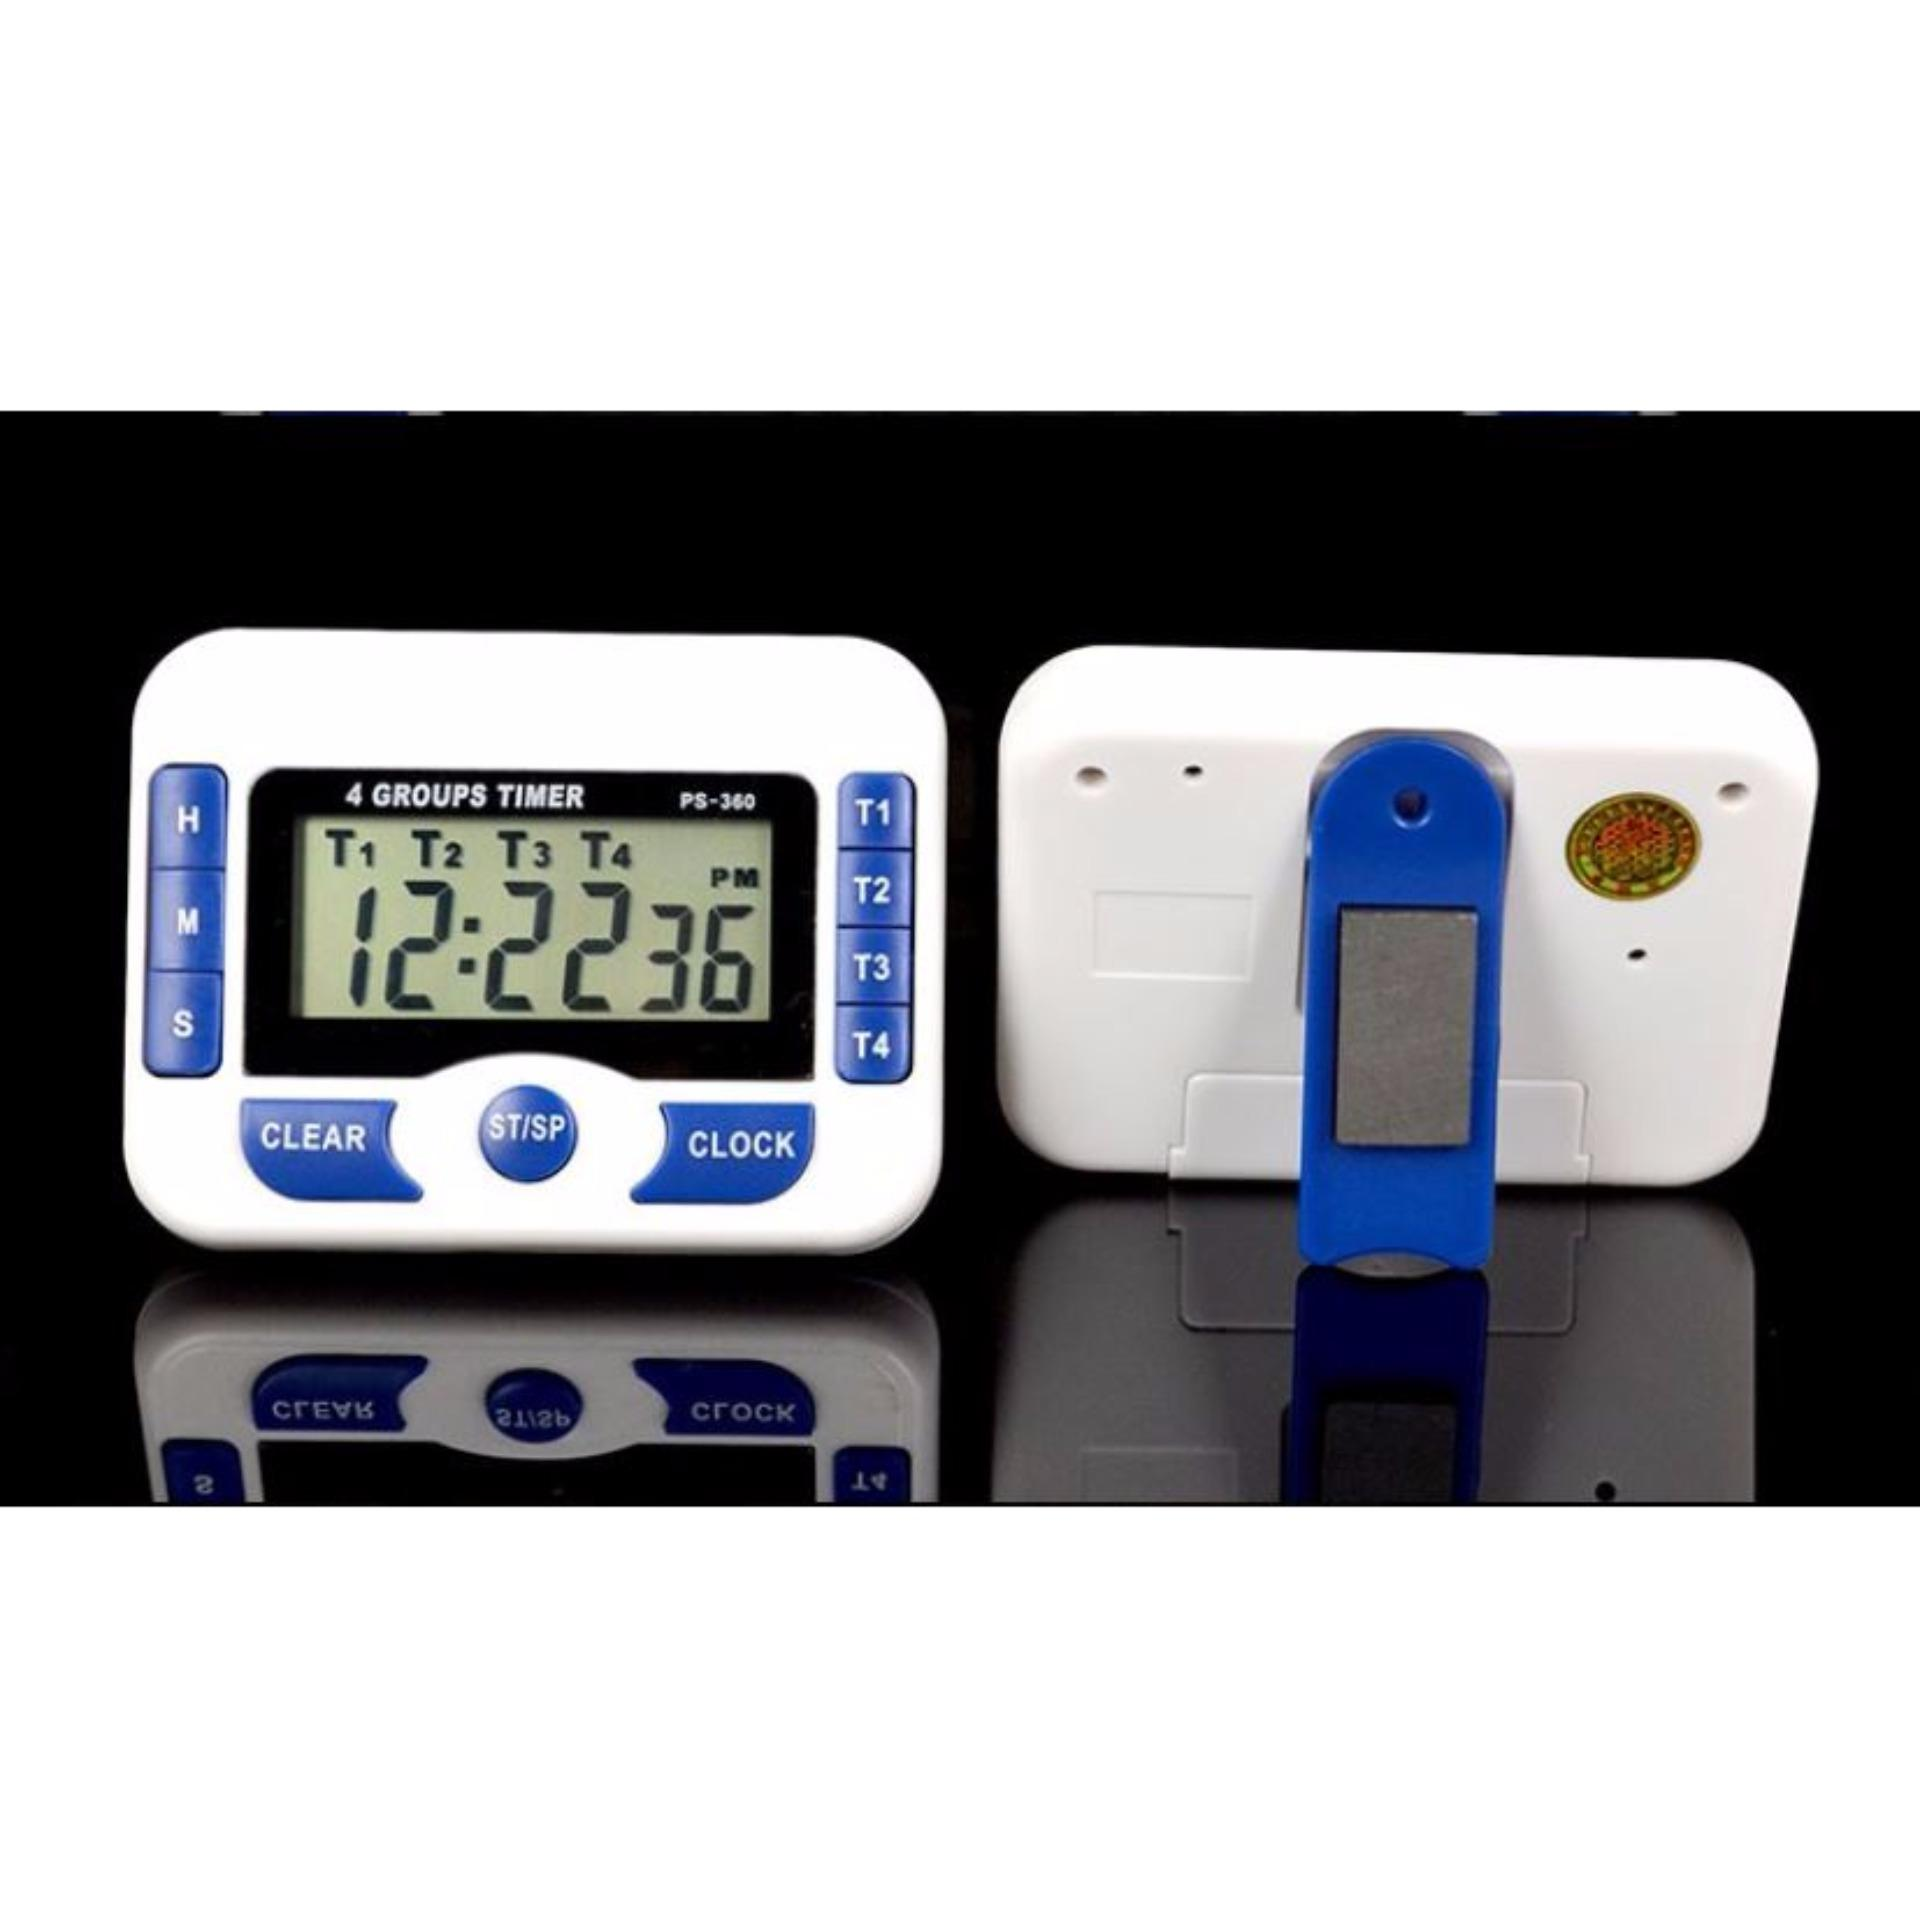 2 In 1 Digital Clock + 4 Independent Group Countdown Kitchen Timer (cod) By Ddme Electronics.